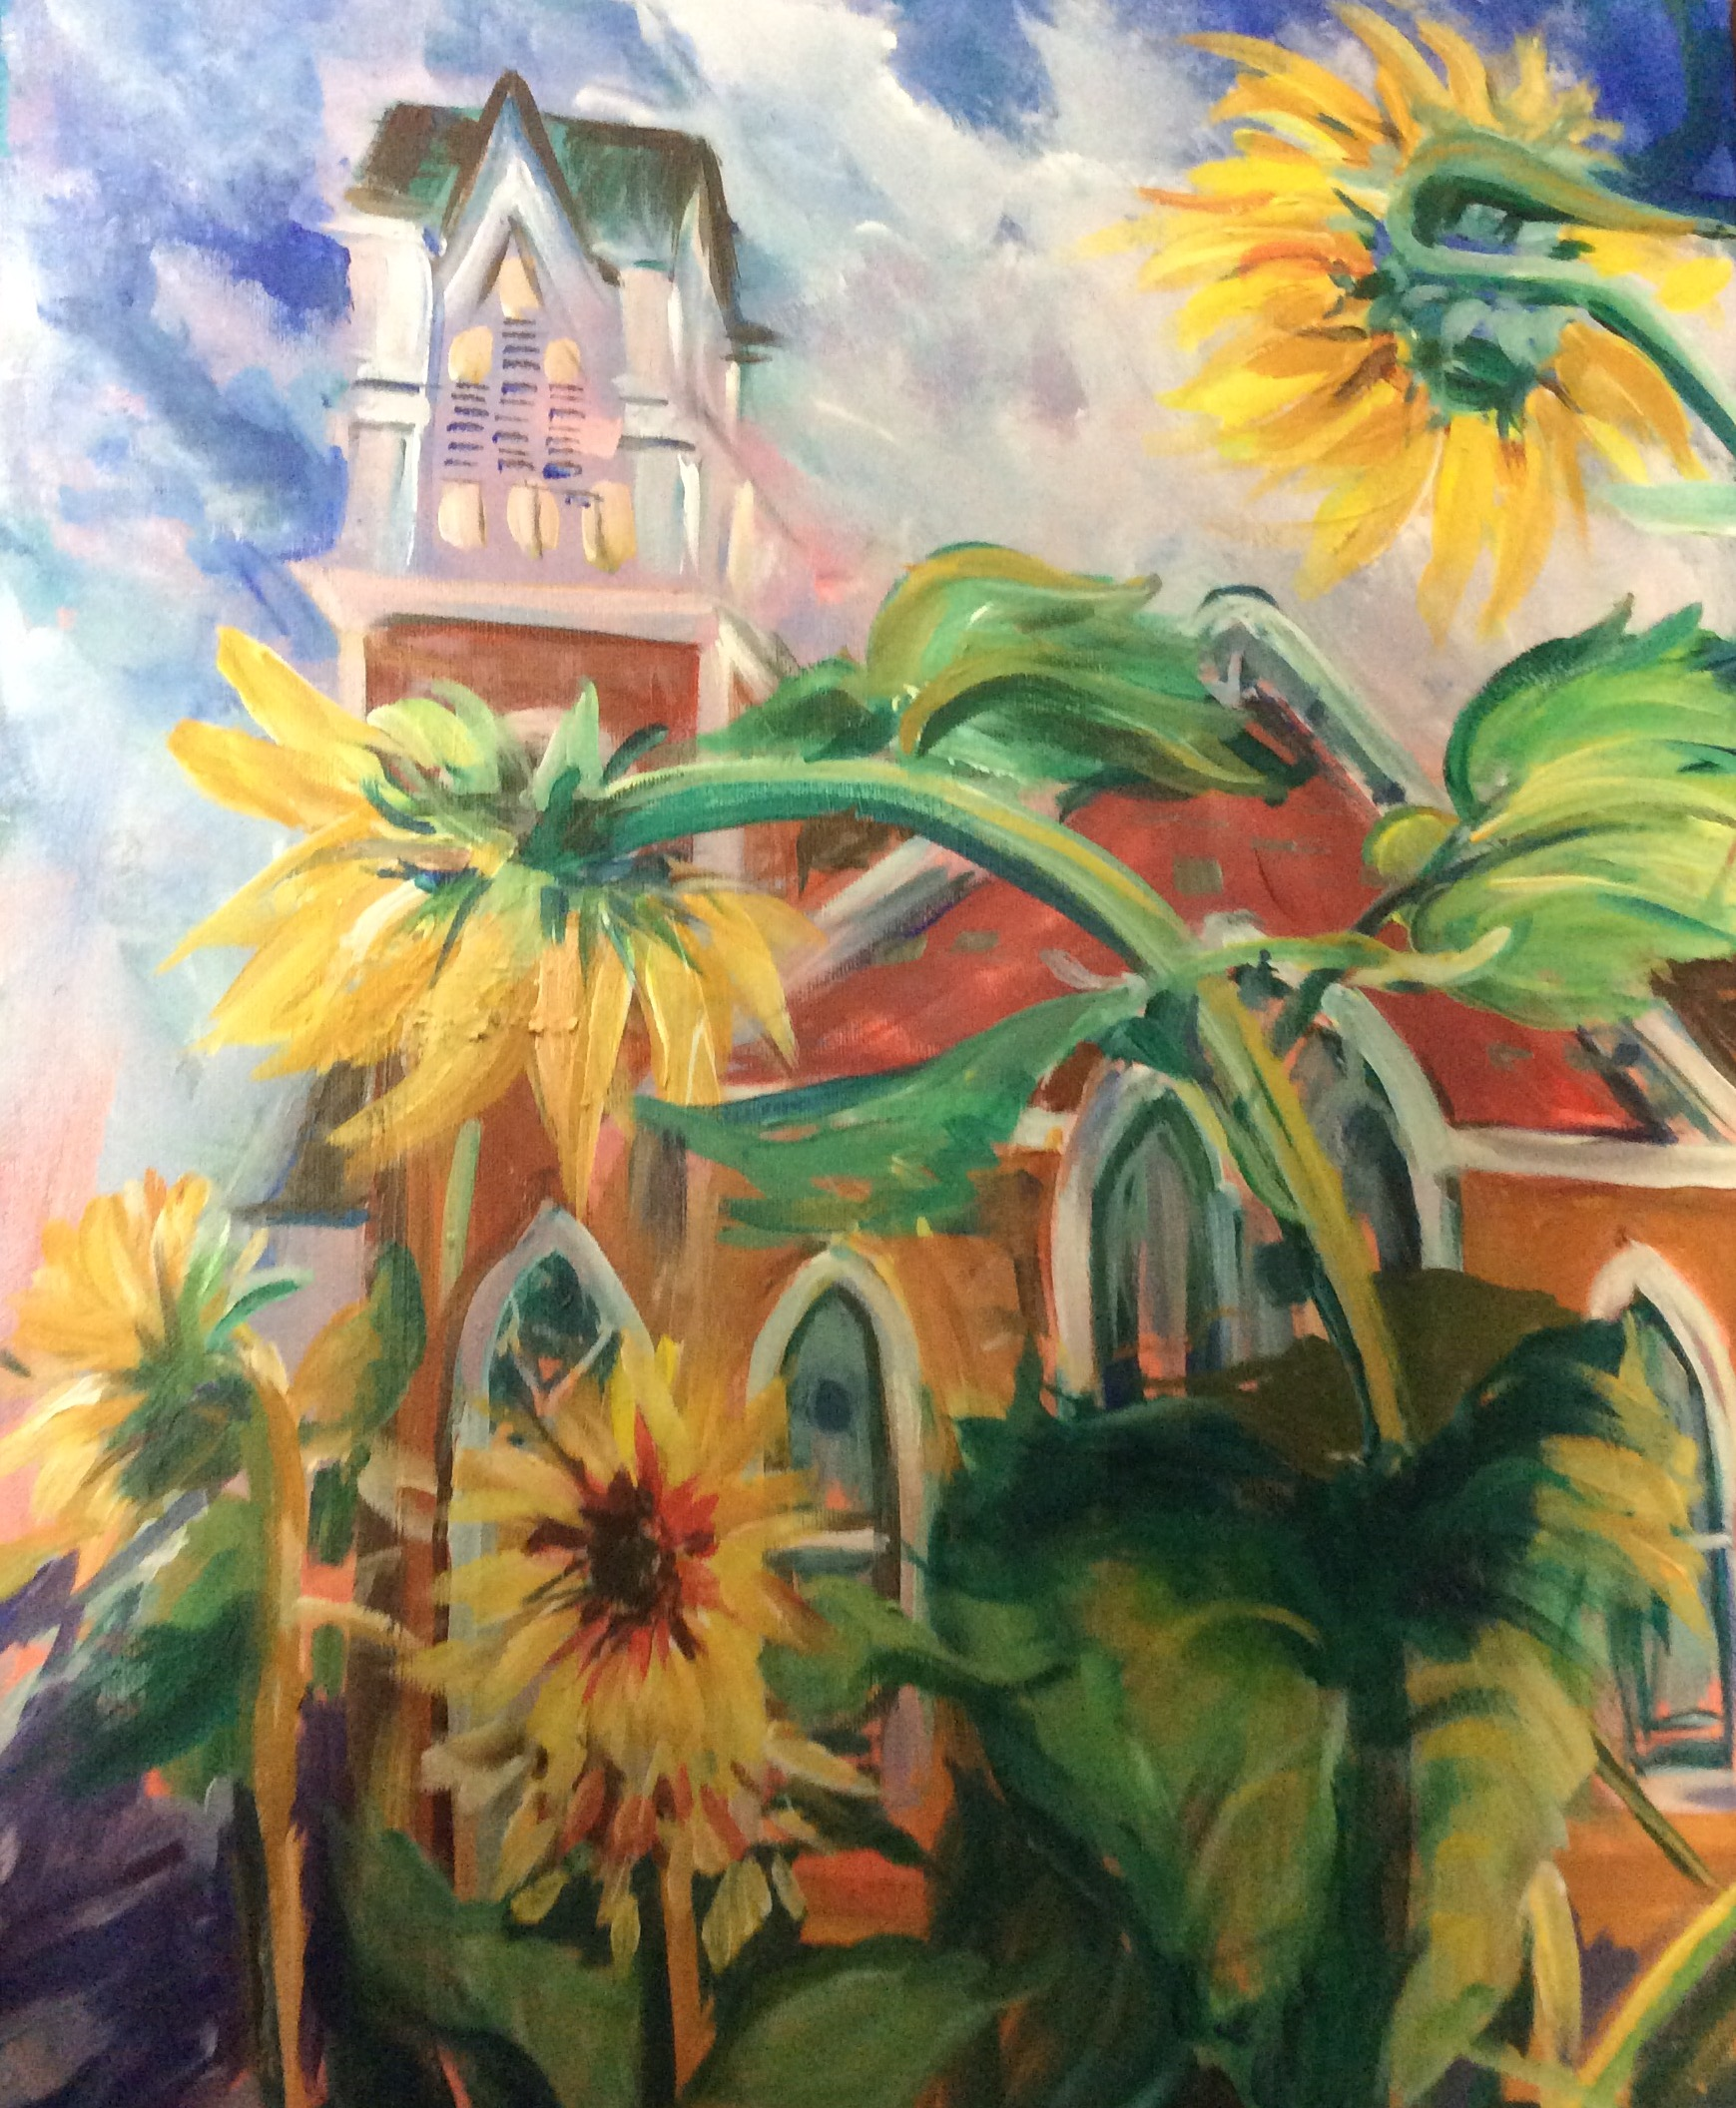 Sunflowers by Debra Scoggin Myers.  This received a Third Place Award.